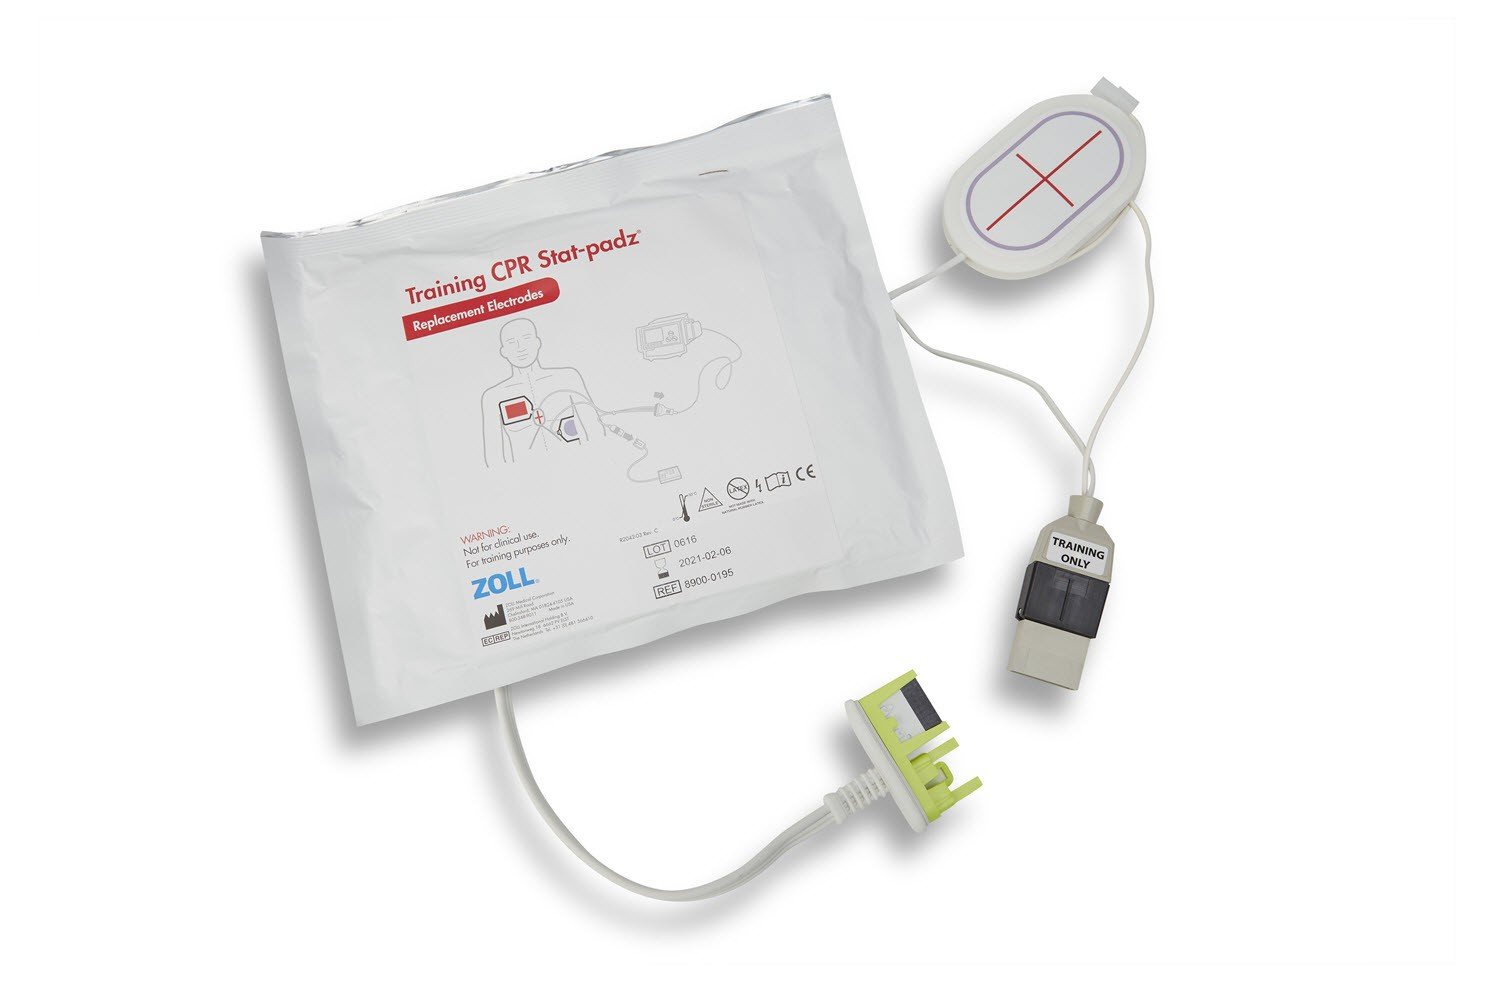 CPR Stat-padz Trainings-Elektrode